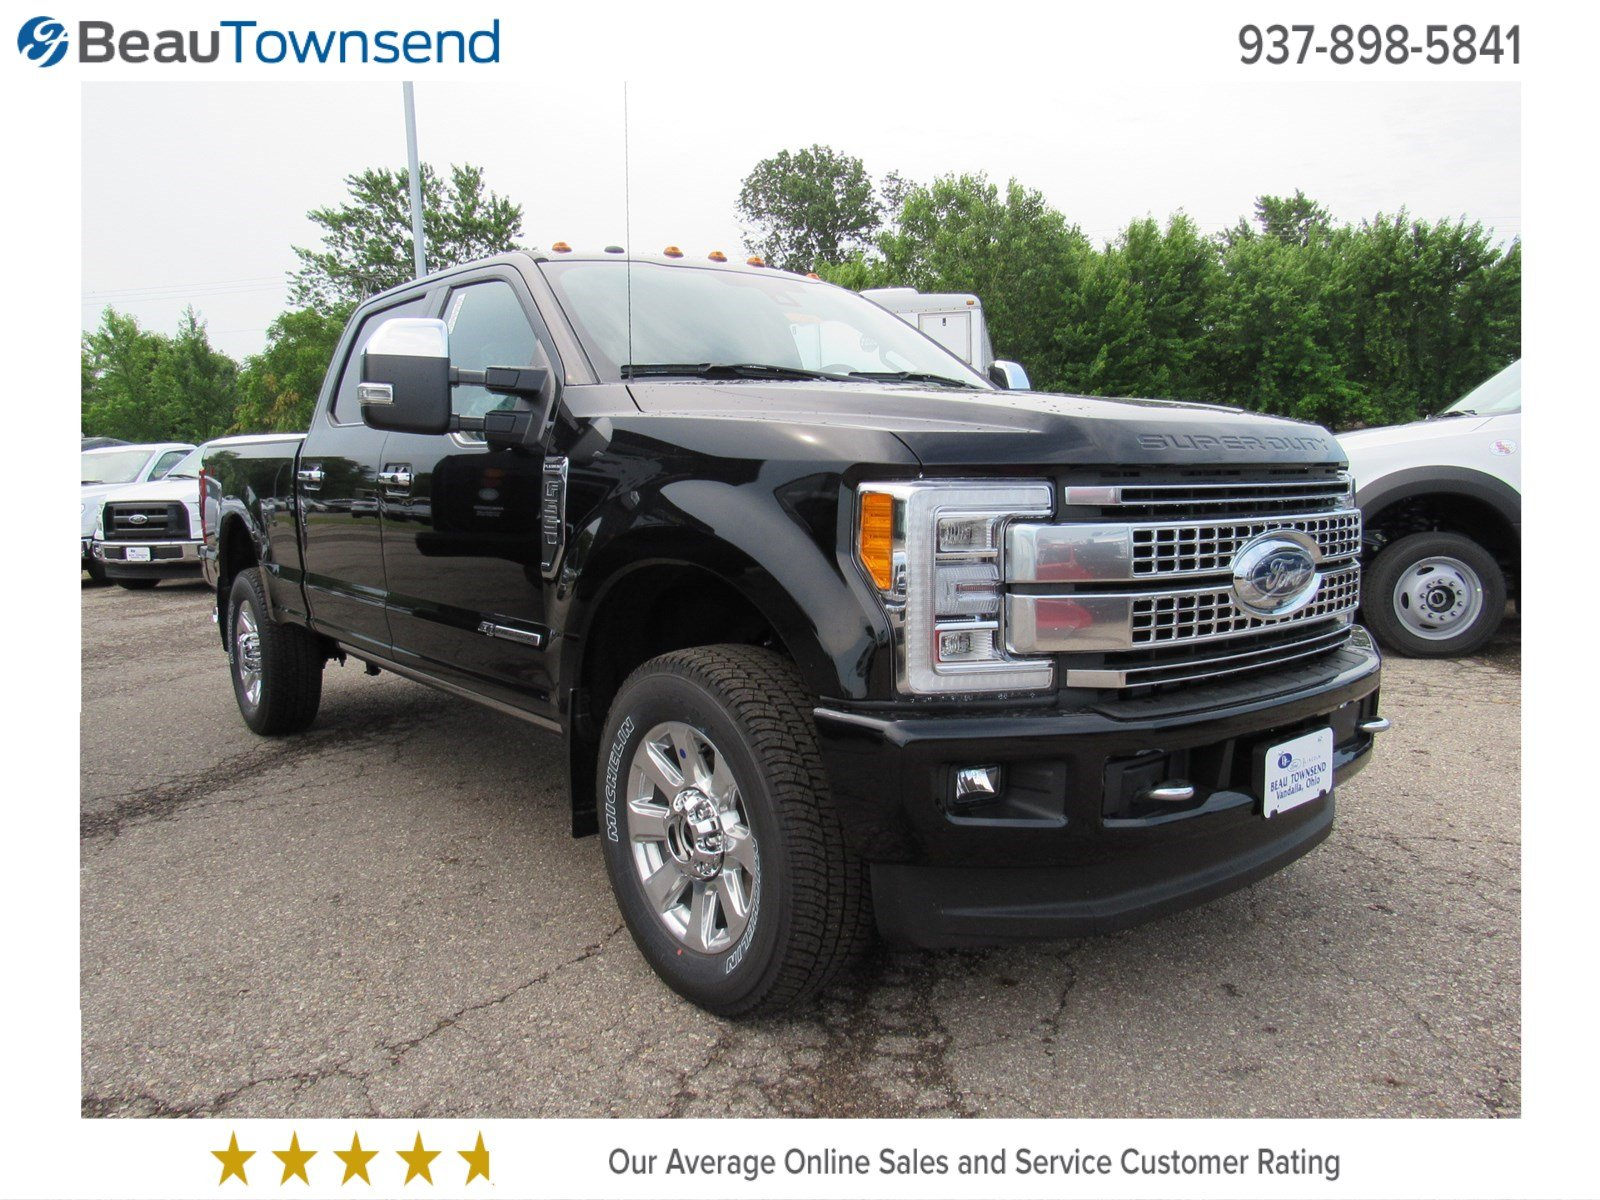 Beau Townsend Ford >> Beau Townsend Ford Vandalia | 2017, 2018, 2019 Ford Price, Release Date, Reviews